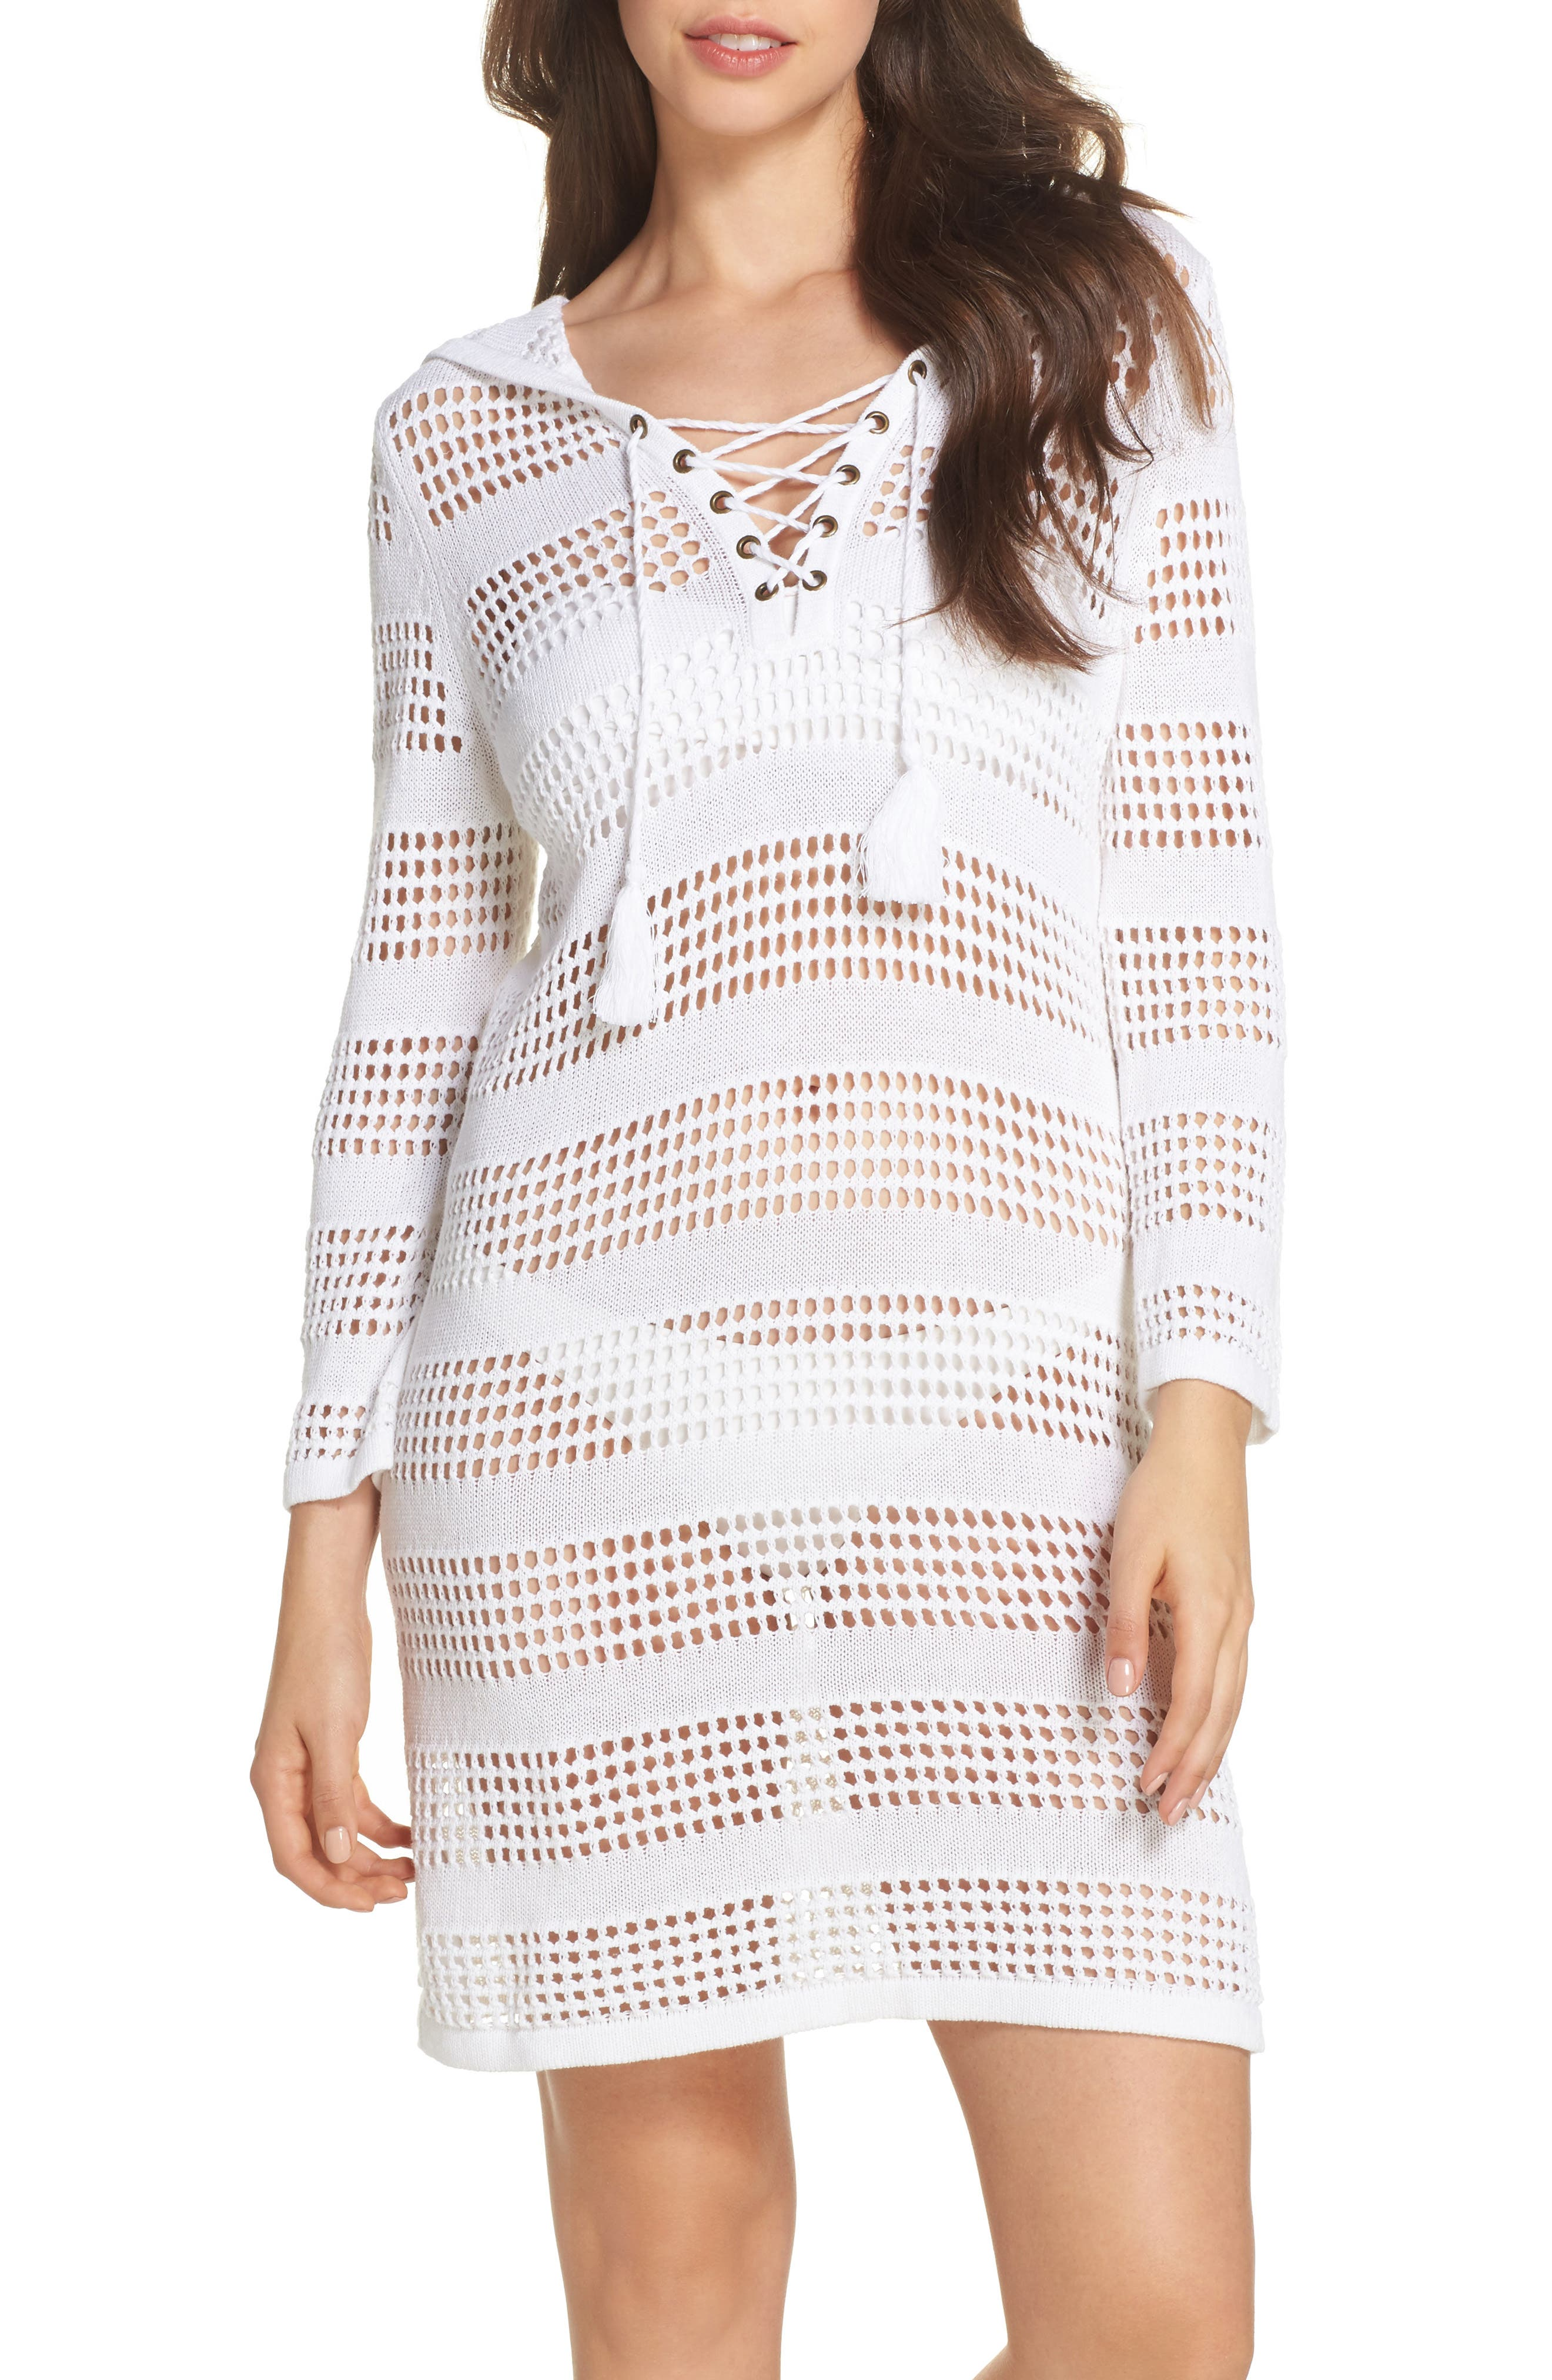 Main Image - Tommy Bahama Open Stitch Hooded Cover-Up Sweater Dress